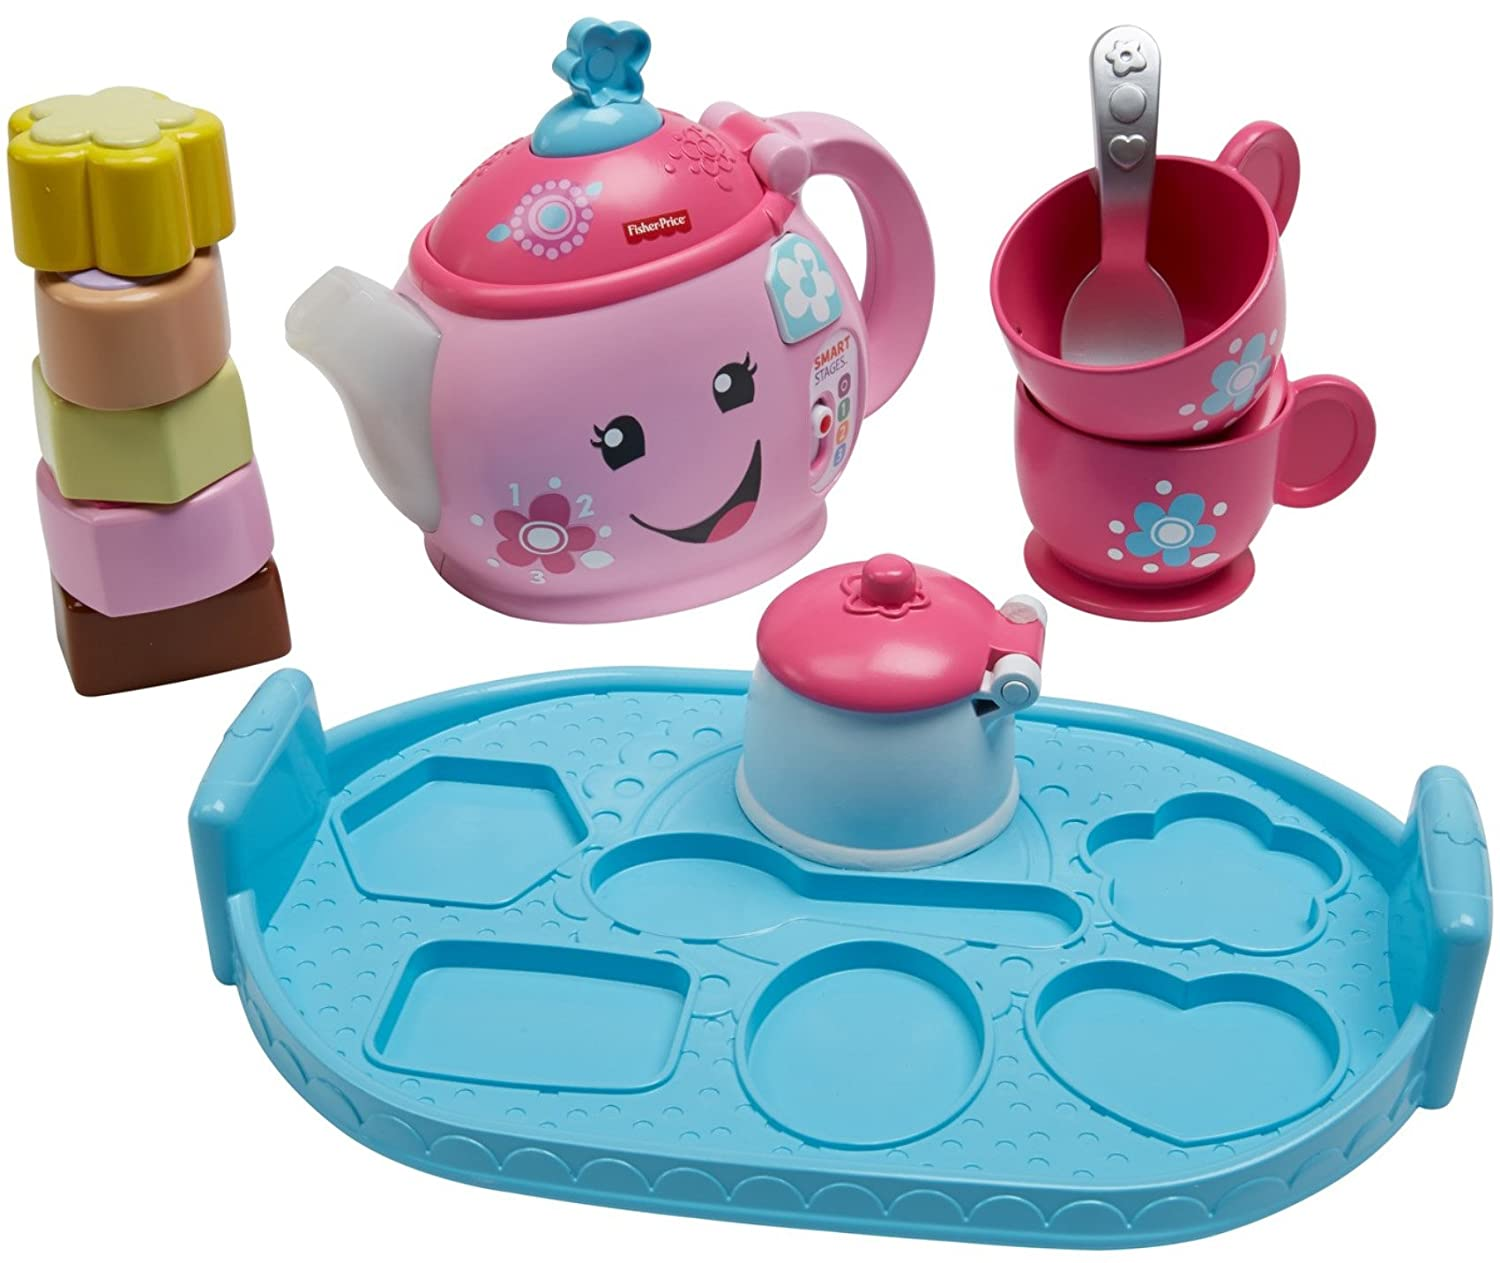 Amazon.com: Fisher-Price Laugh & Learn Sweet Manners Tea Set ...